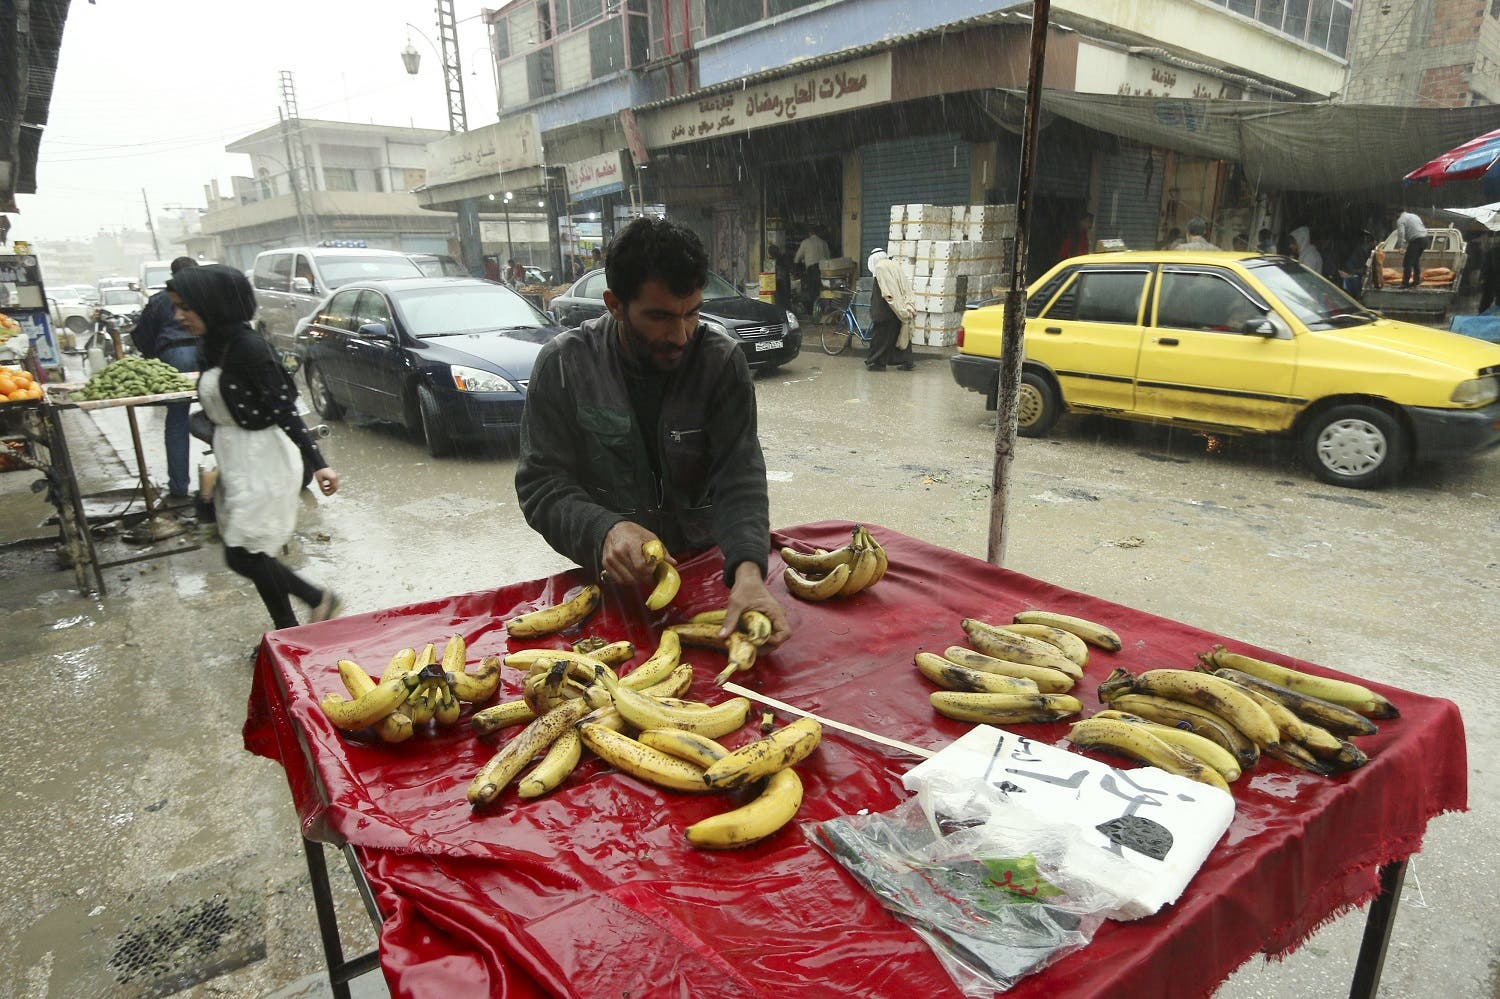 A vendor arranges bananas in a vegetable market in Qamishli. (Reuters)